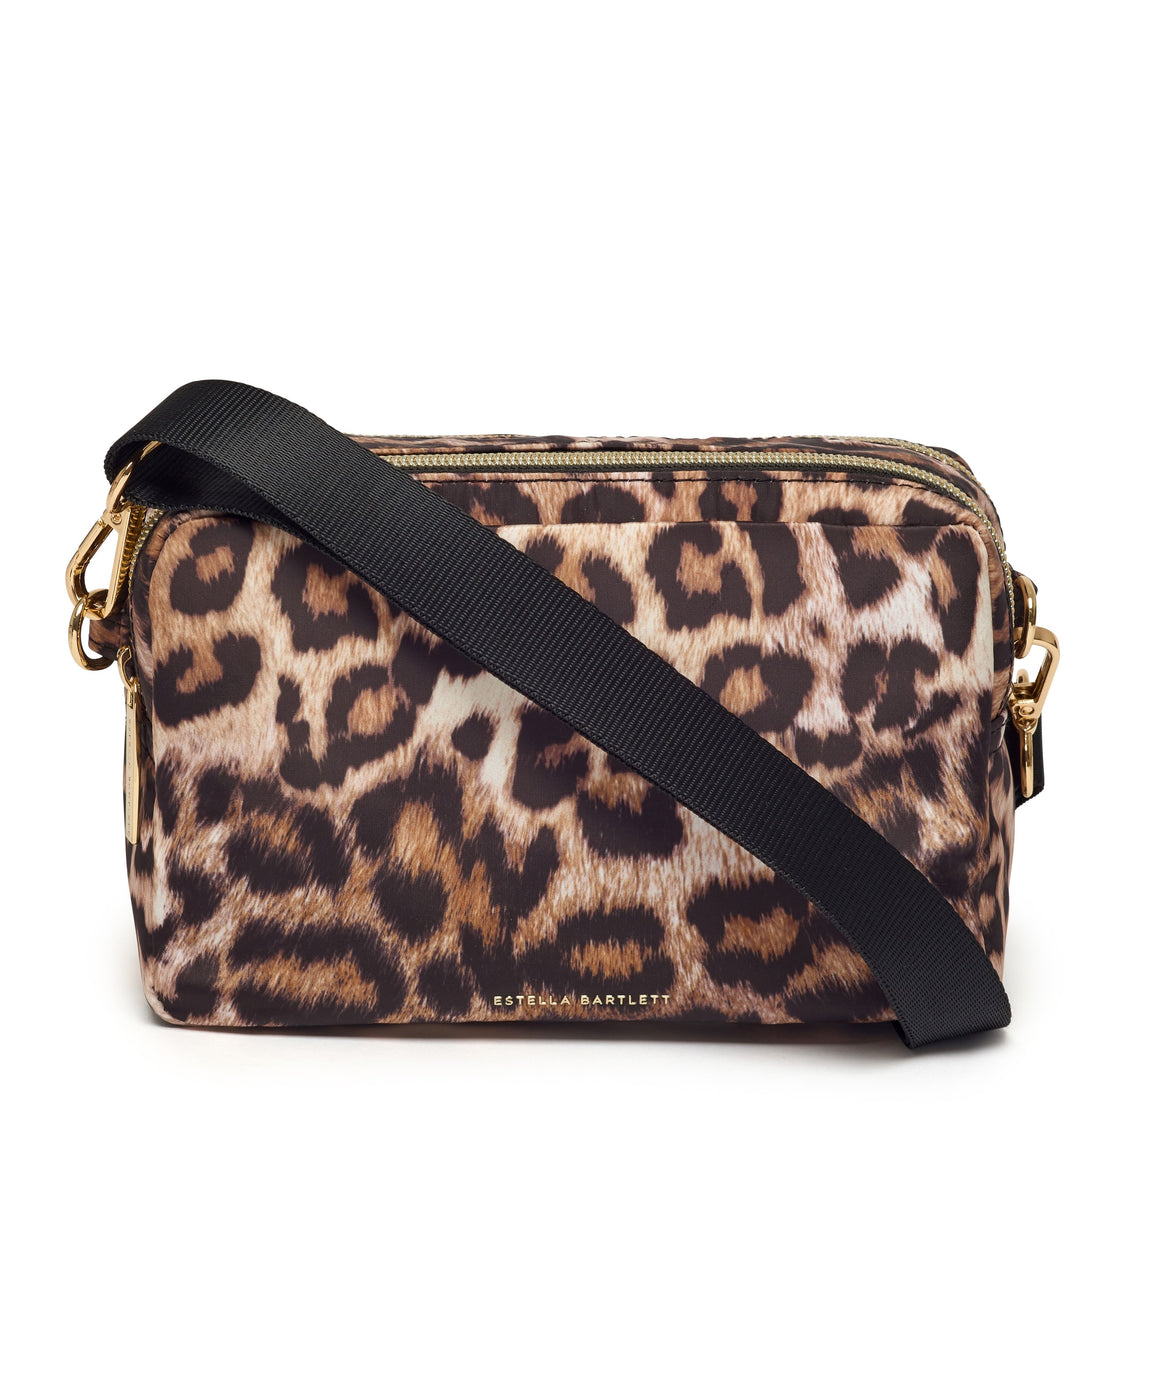 Estella Bartlett cross body leopard print bag